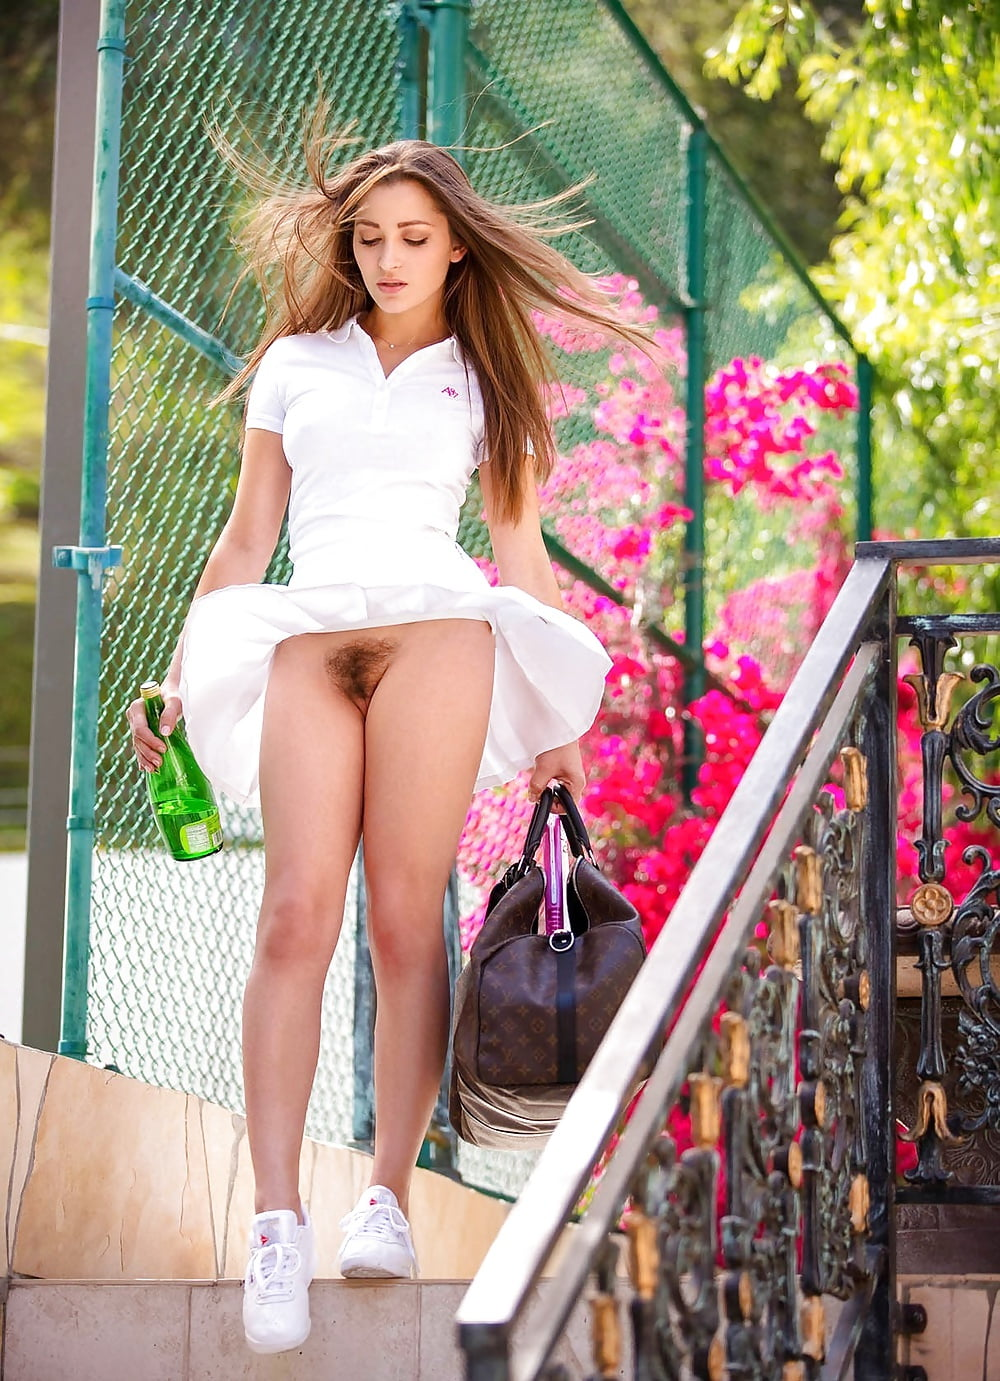 white-glamour-girl-upskirts-incent